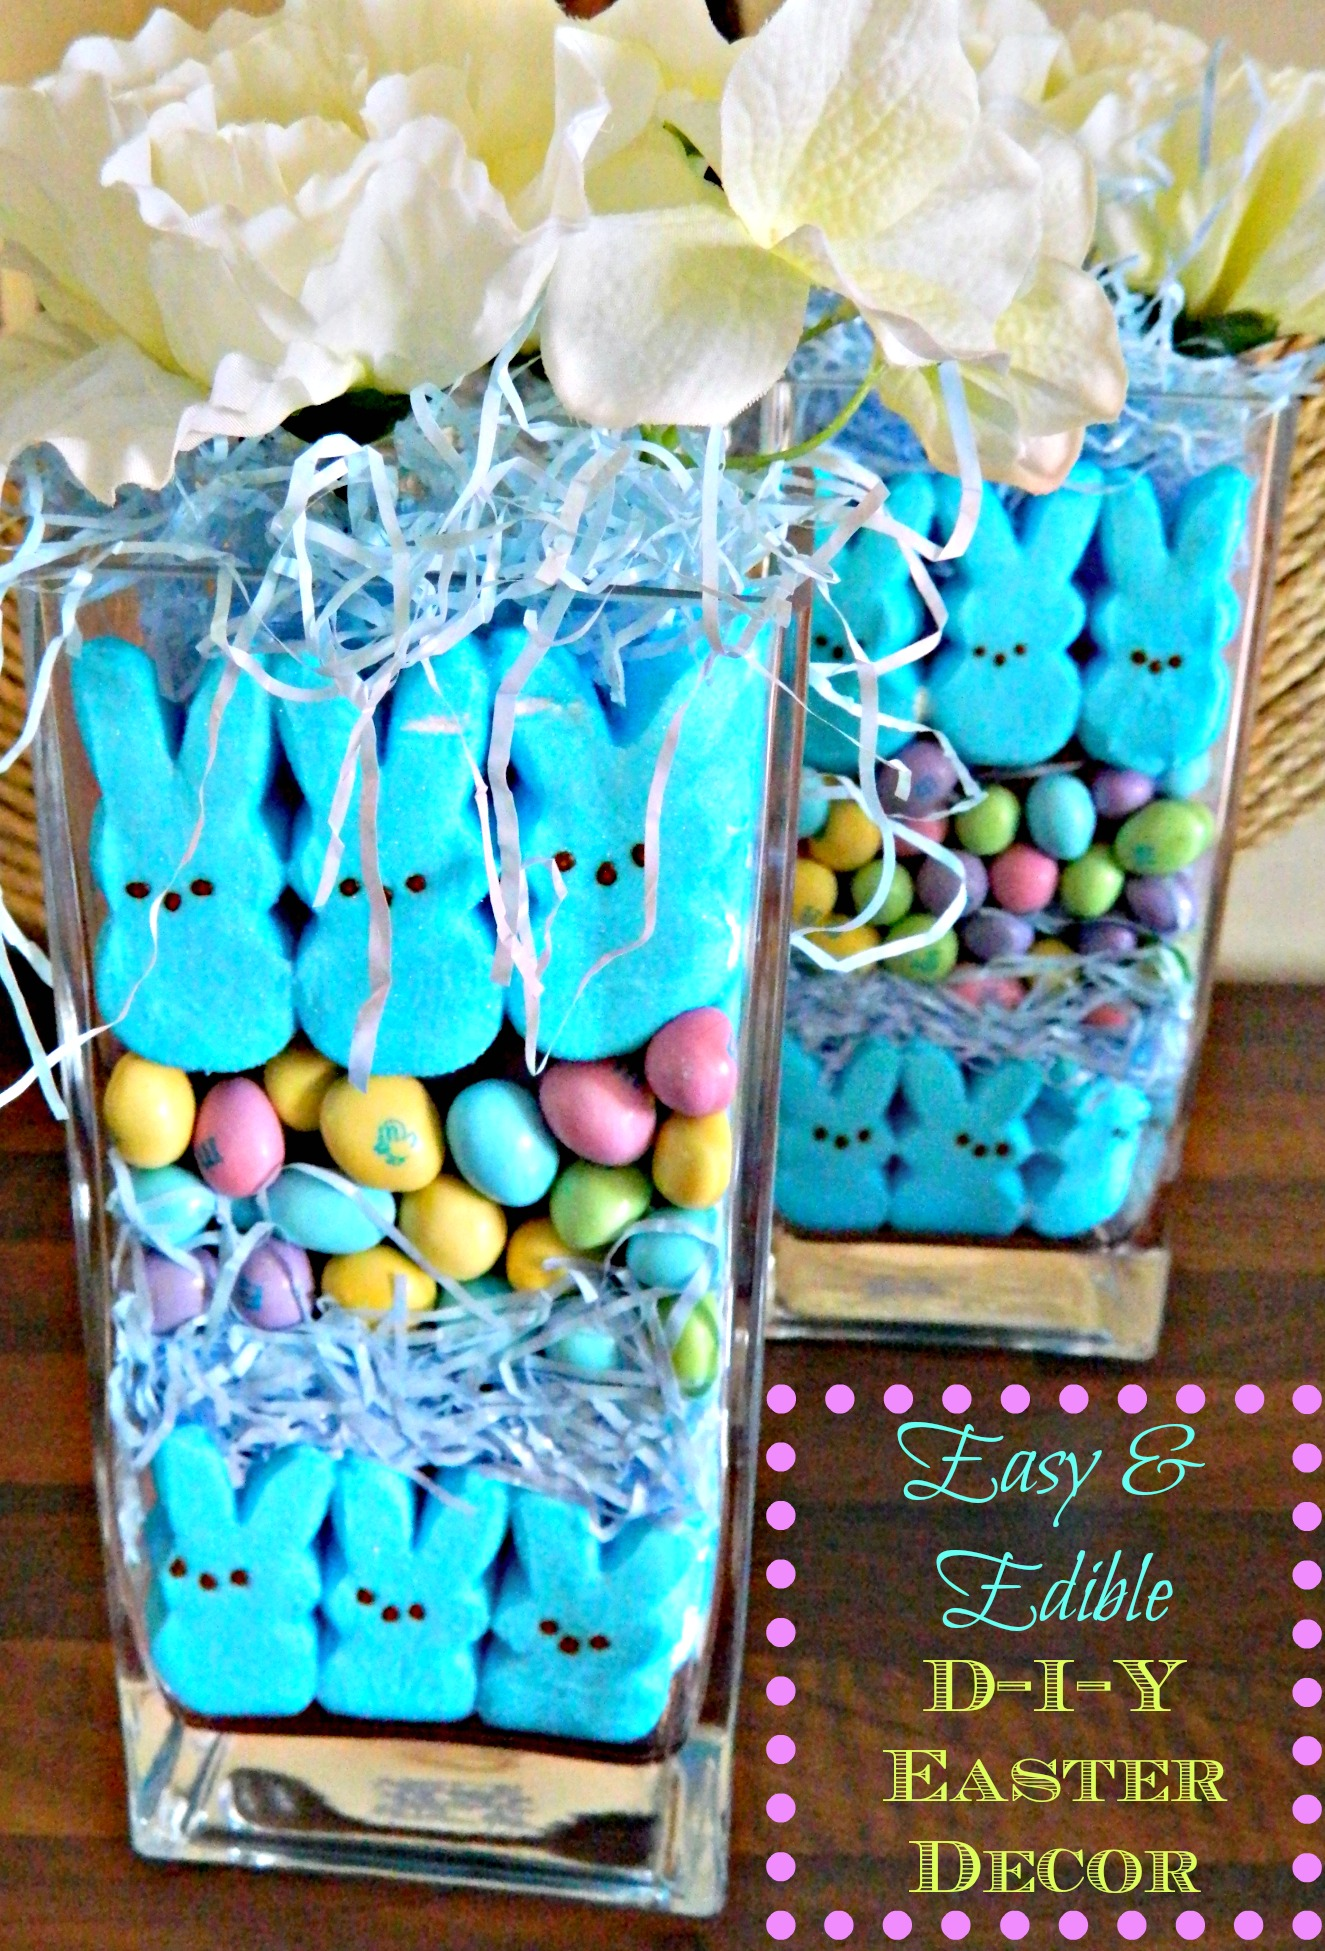 Easy D-I-Y Easter Decorations | Finding Silver Linings